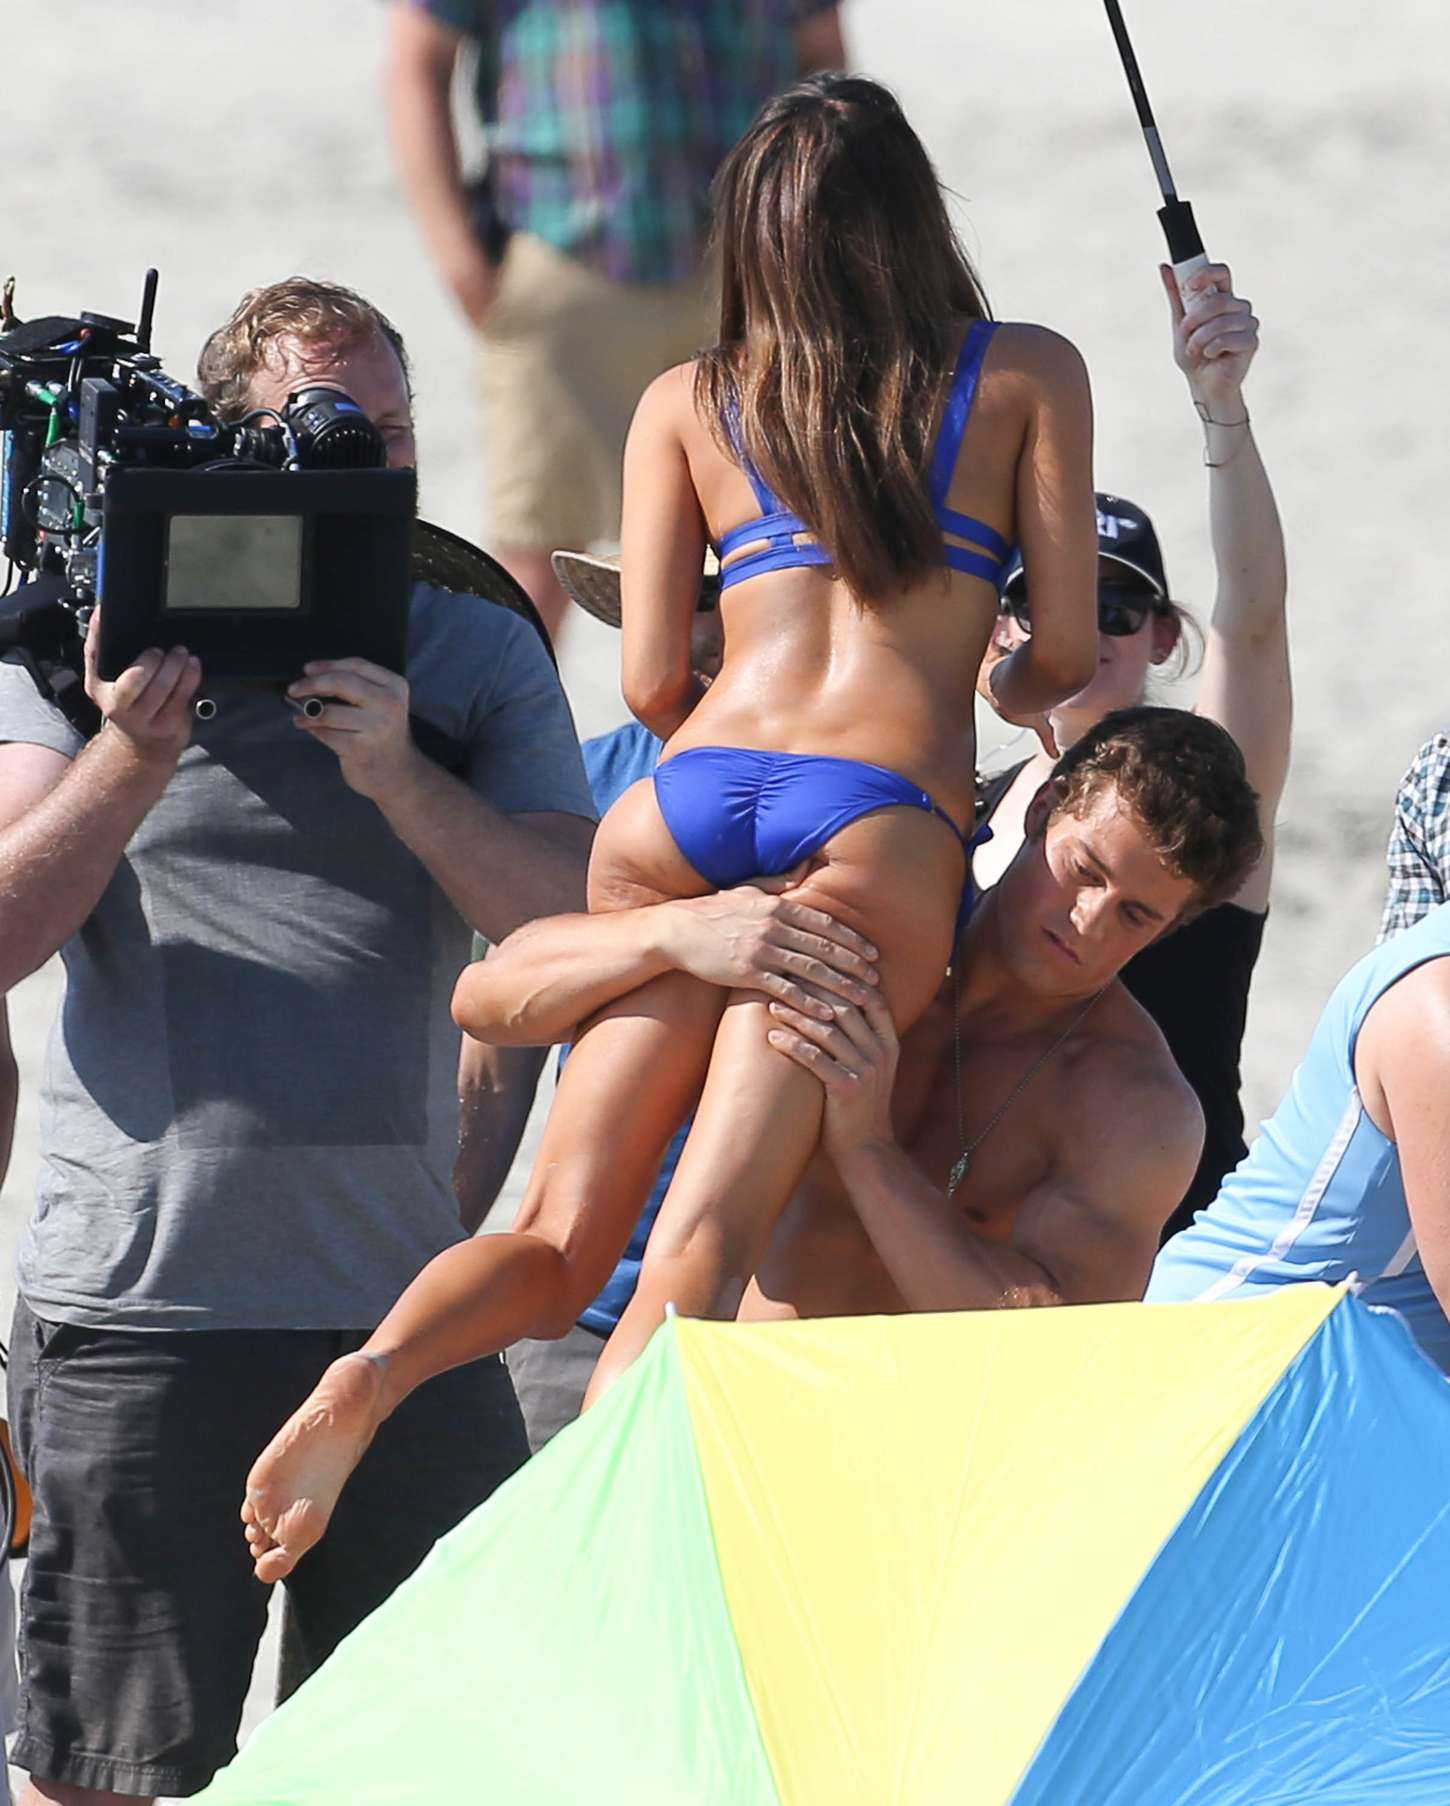 Aubrey Plaza in Bikini on Dirty Grandpa set -19 - GotCeleb